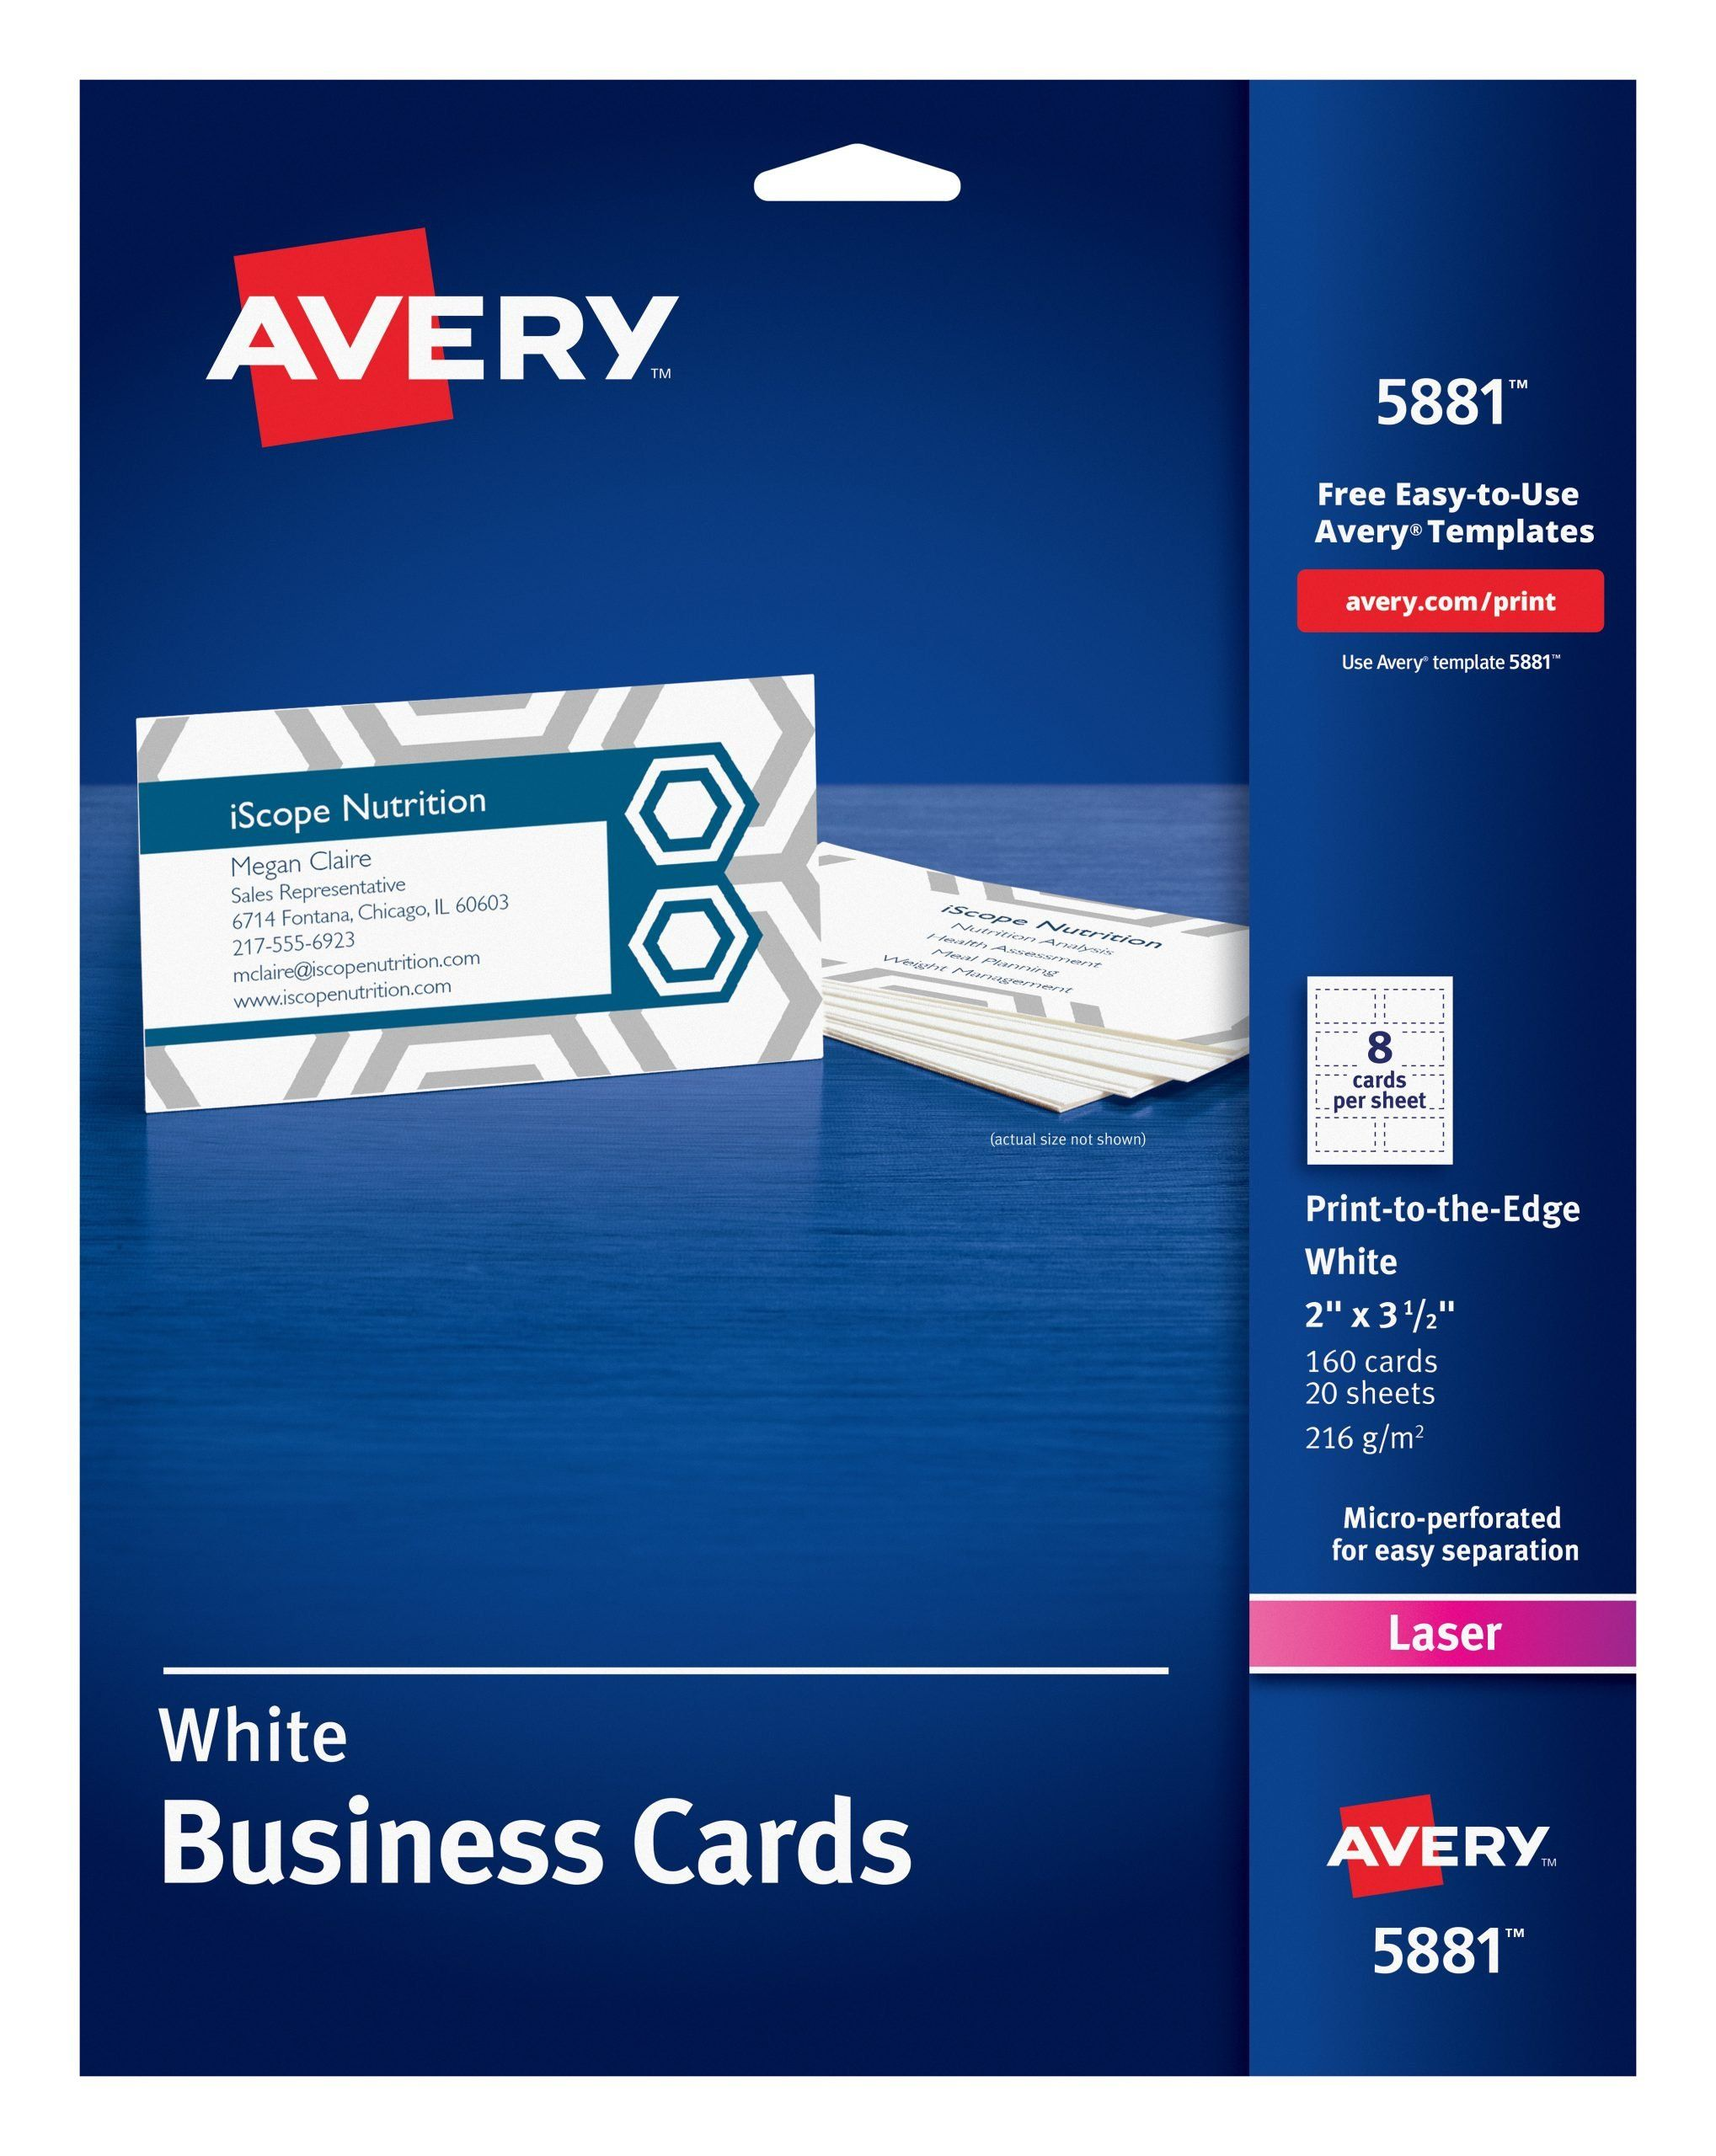 Avery 5960 Labels Template Avery 5881 Print To The Edge Microperf Business Cards Color Laser 2 X 3 1 2 White P Label Templates Colorful Business Card Templates